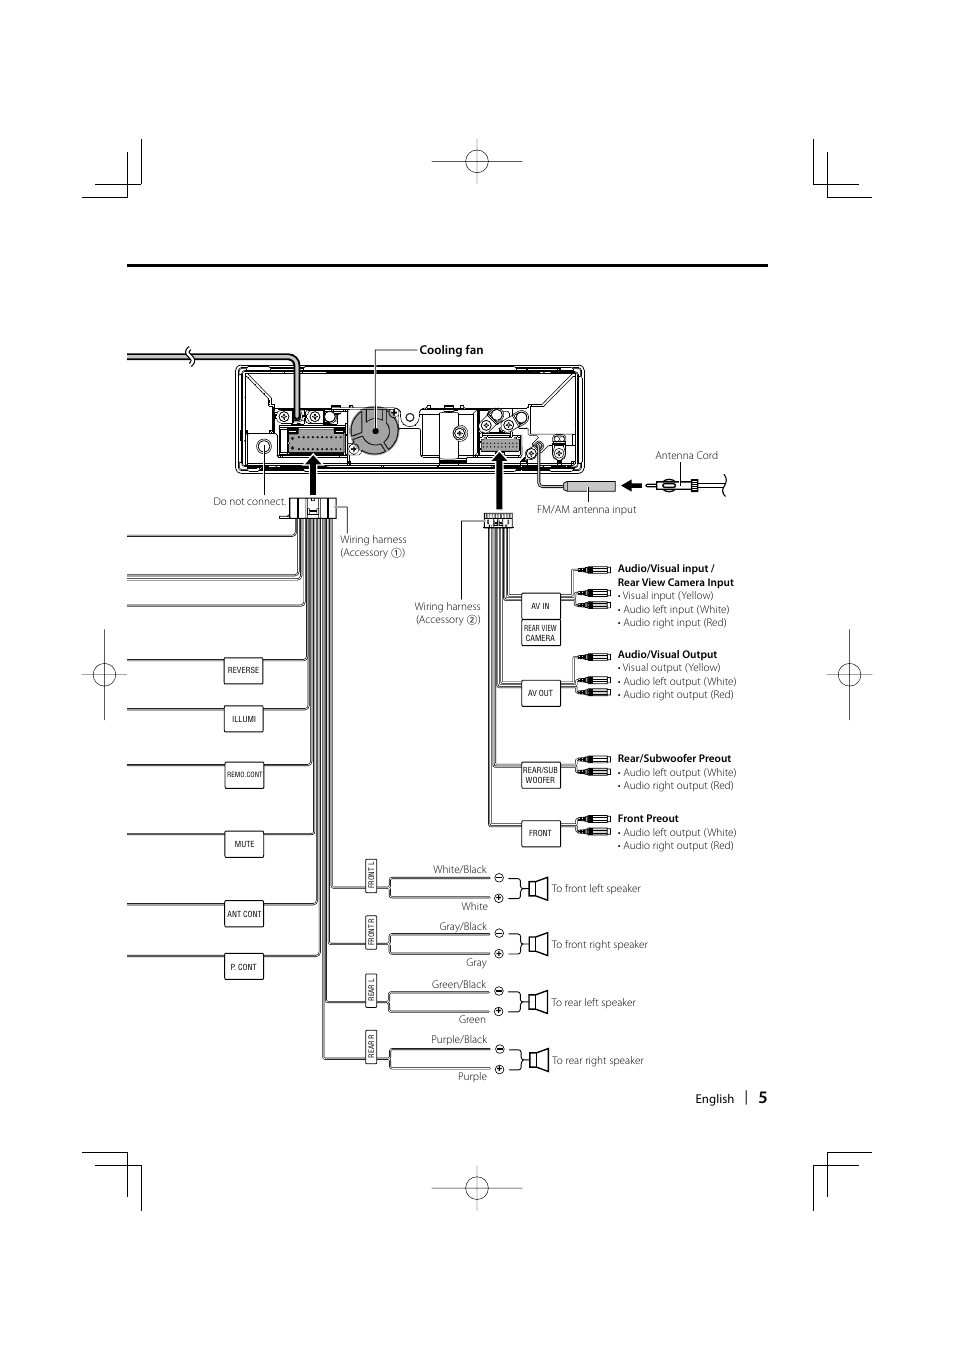 [FPER_4992]  E26B90 Kenwood Kvt 719dvd Wiring Diagram | Wiring Library | Kenwood Kvt 512 22 Pin Wiring Diagram |  | Wiring Library